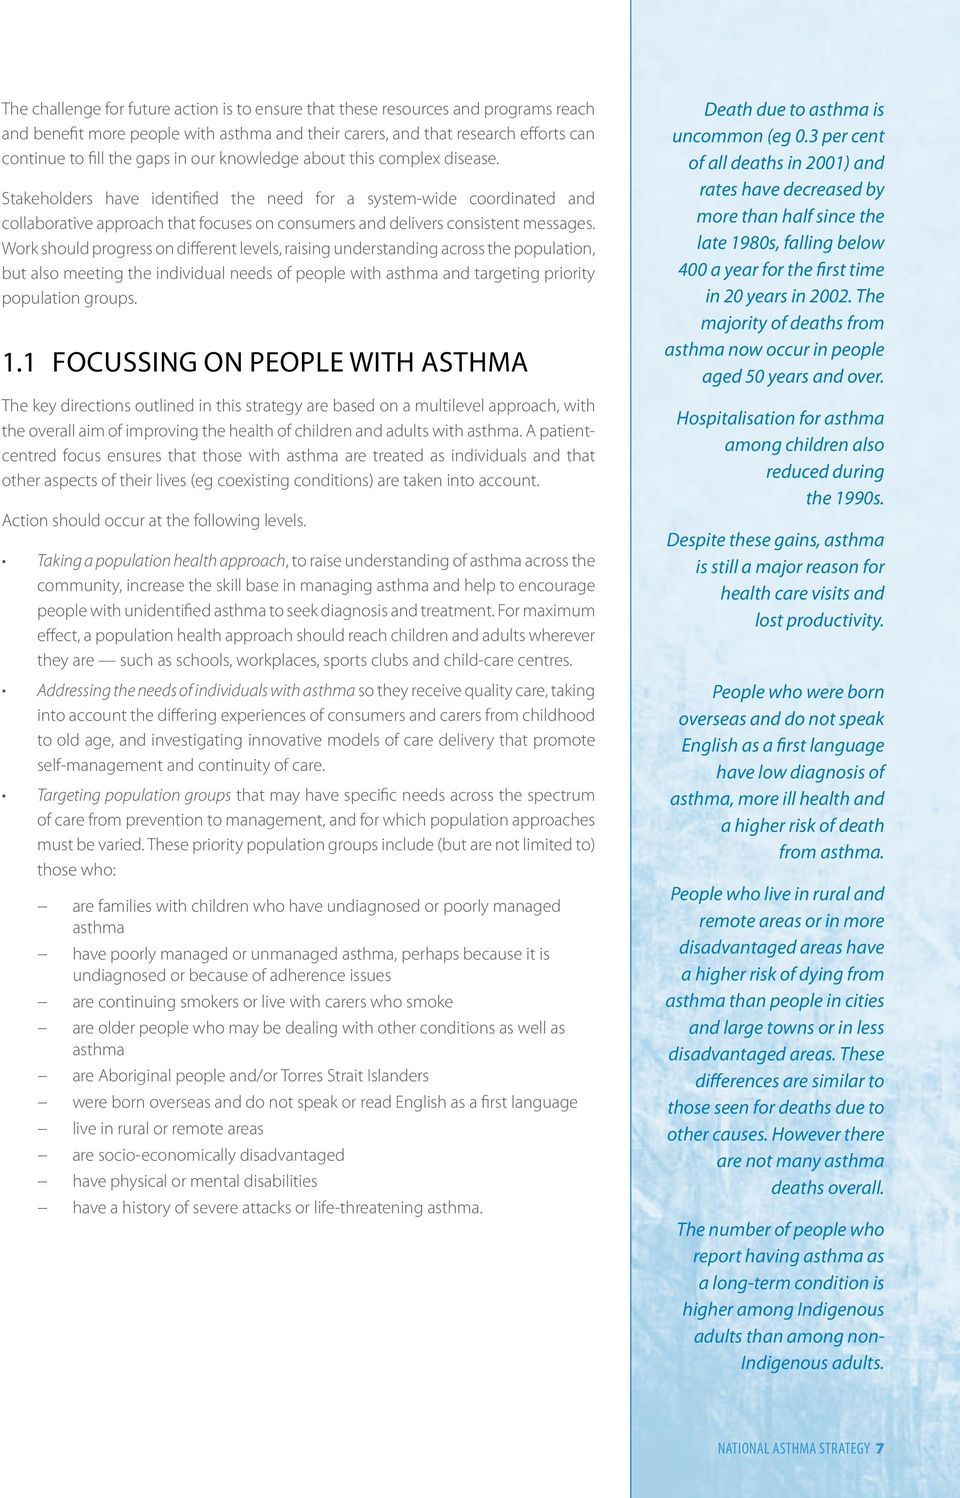 Work should progress on different levels, raising understanding across the population, but also meeting the individual needs of people with asthma and targeting priority population groups. 1.